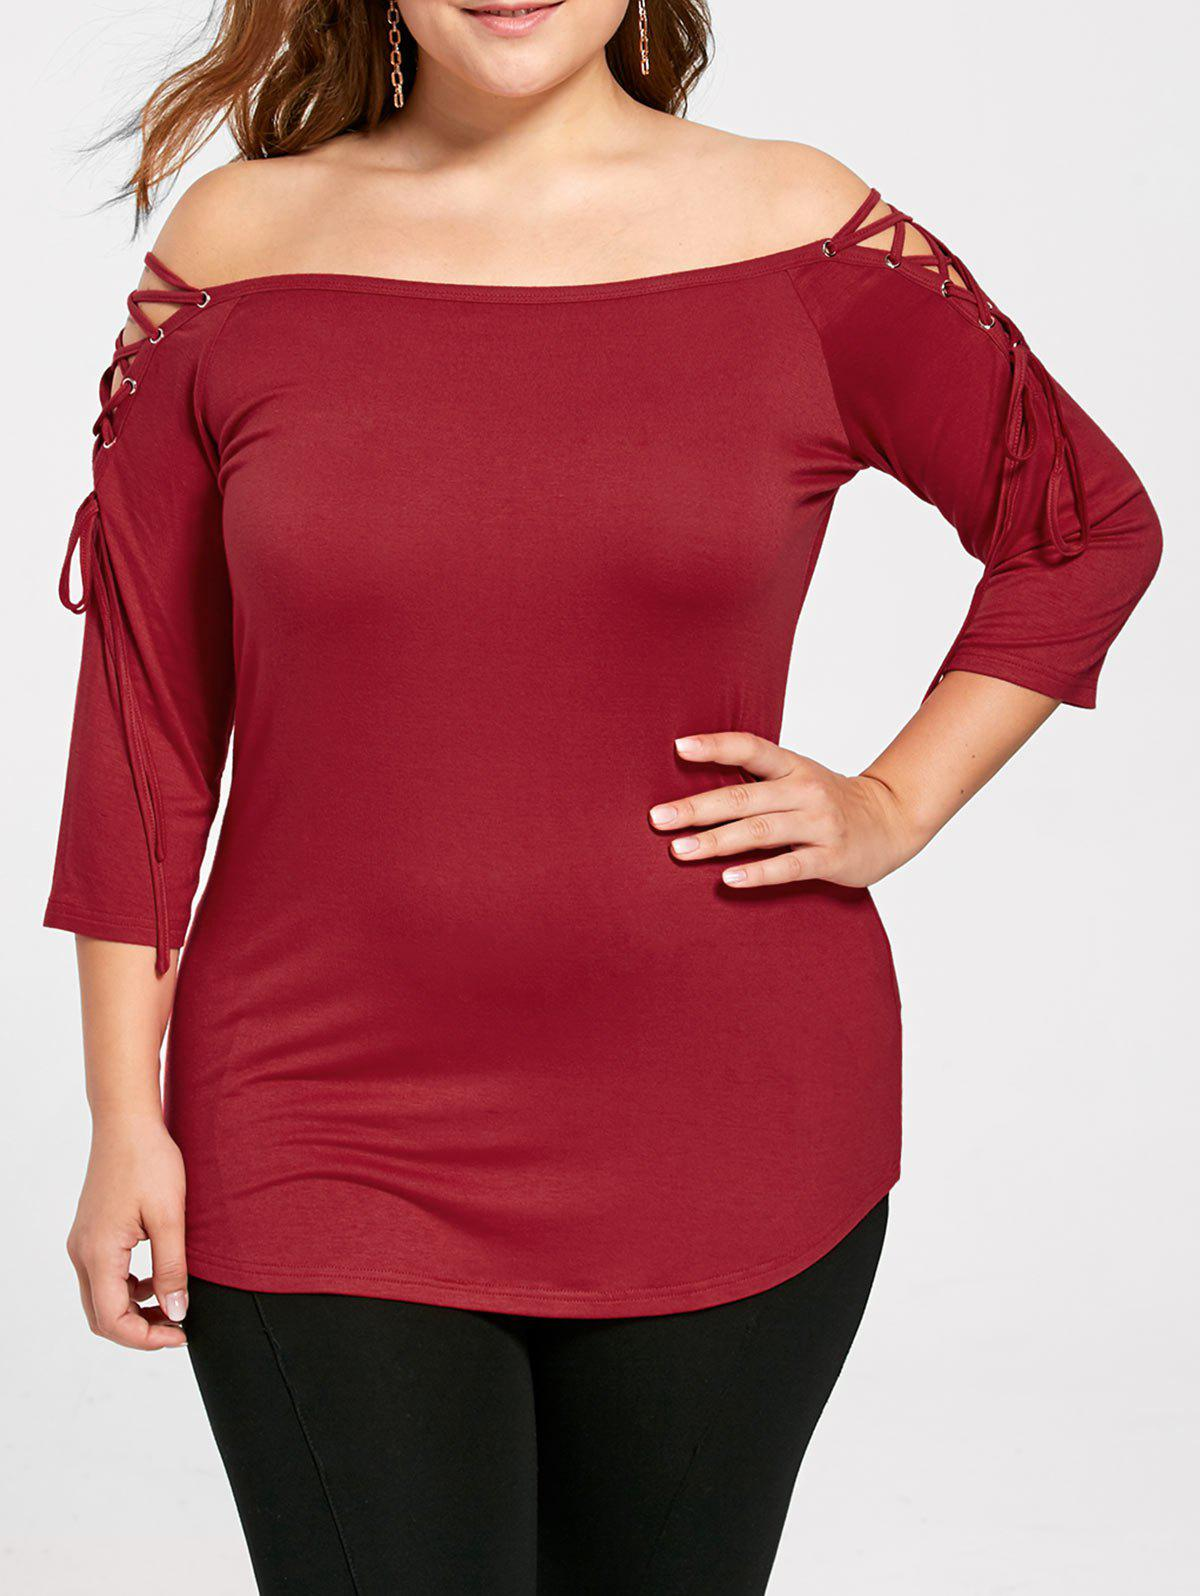 Plus Size Off The Shoulder TopWOMEN<br><br>Size: 2XL; Color: RED; Material: Rayon,Spandex; Shirt Length: Regular; Sleeve Length: Three Quarter; Collar: Off The Shoulder; Style: Casual; Season: Fall,Spring,Summer; Pattern Type: Solid; Weight: 0.2400kg; Package Contents: 1 x Top;